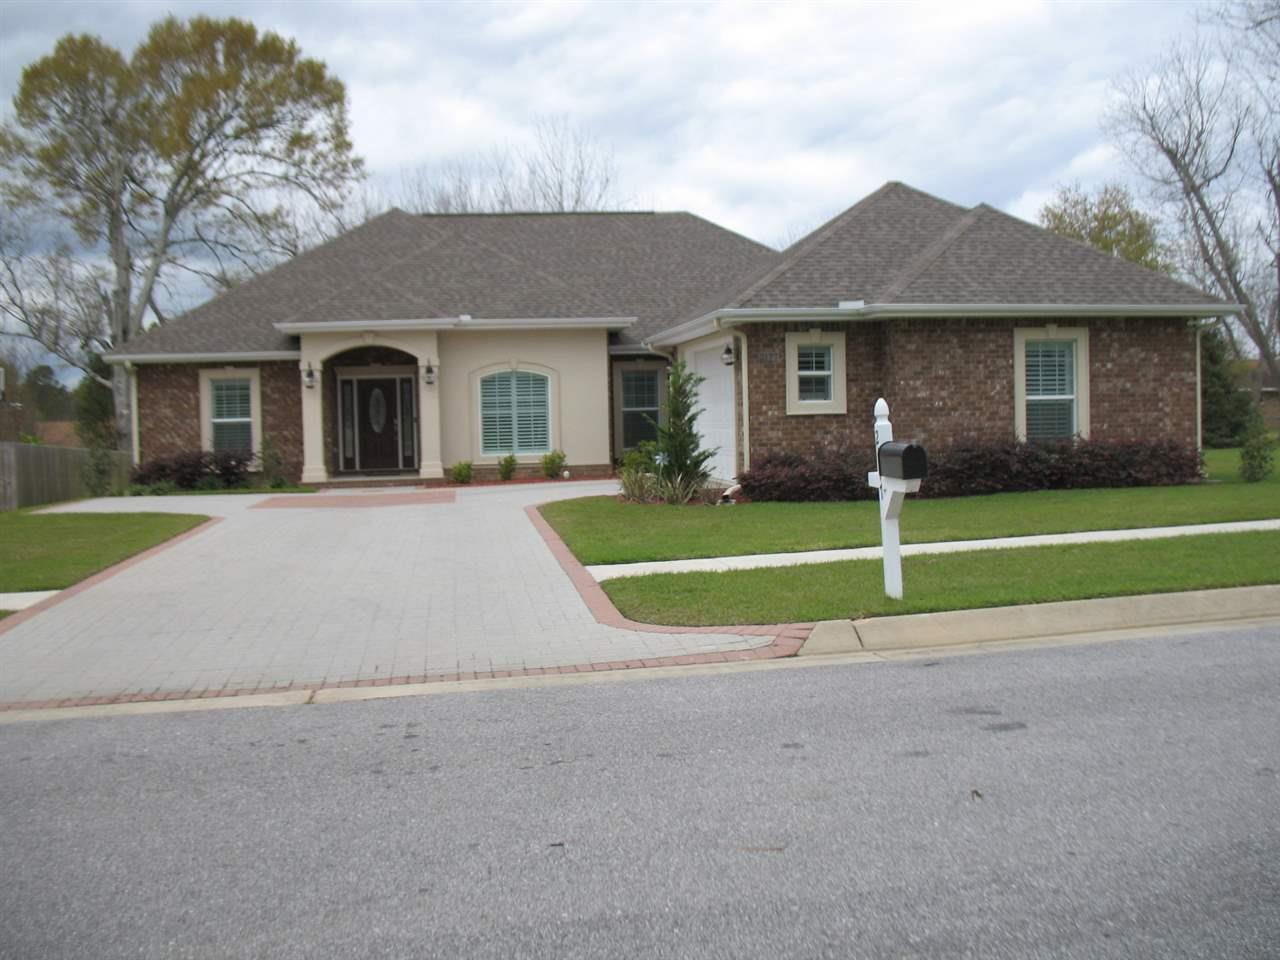 2177 STAFF DR, CANTONMENT, FL 32533